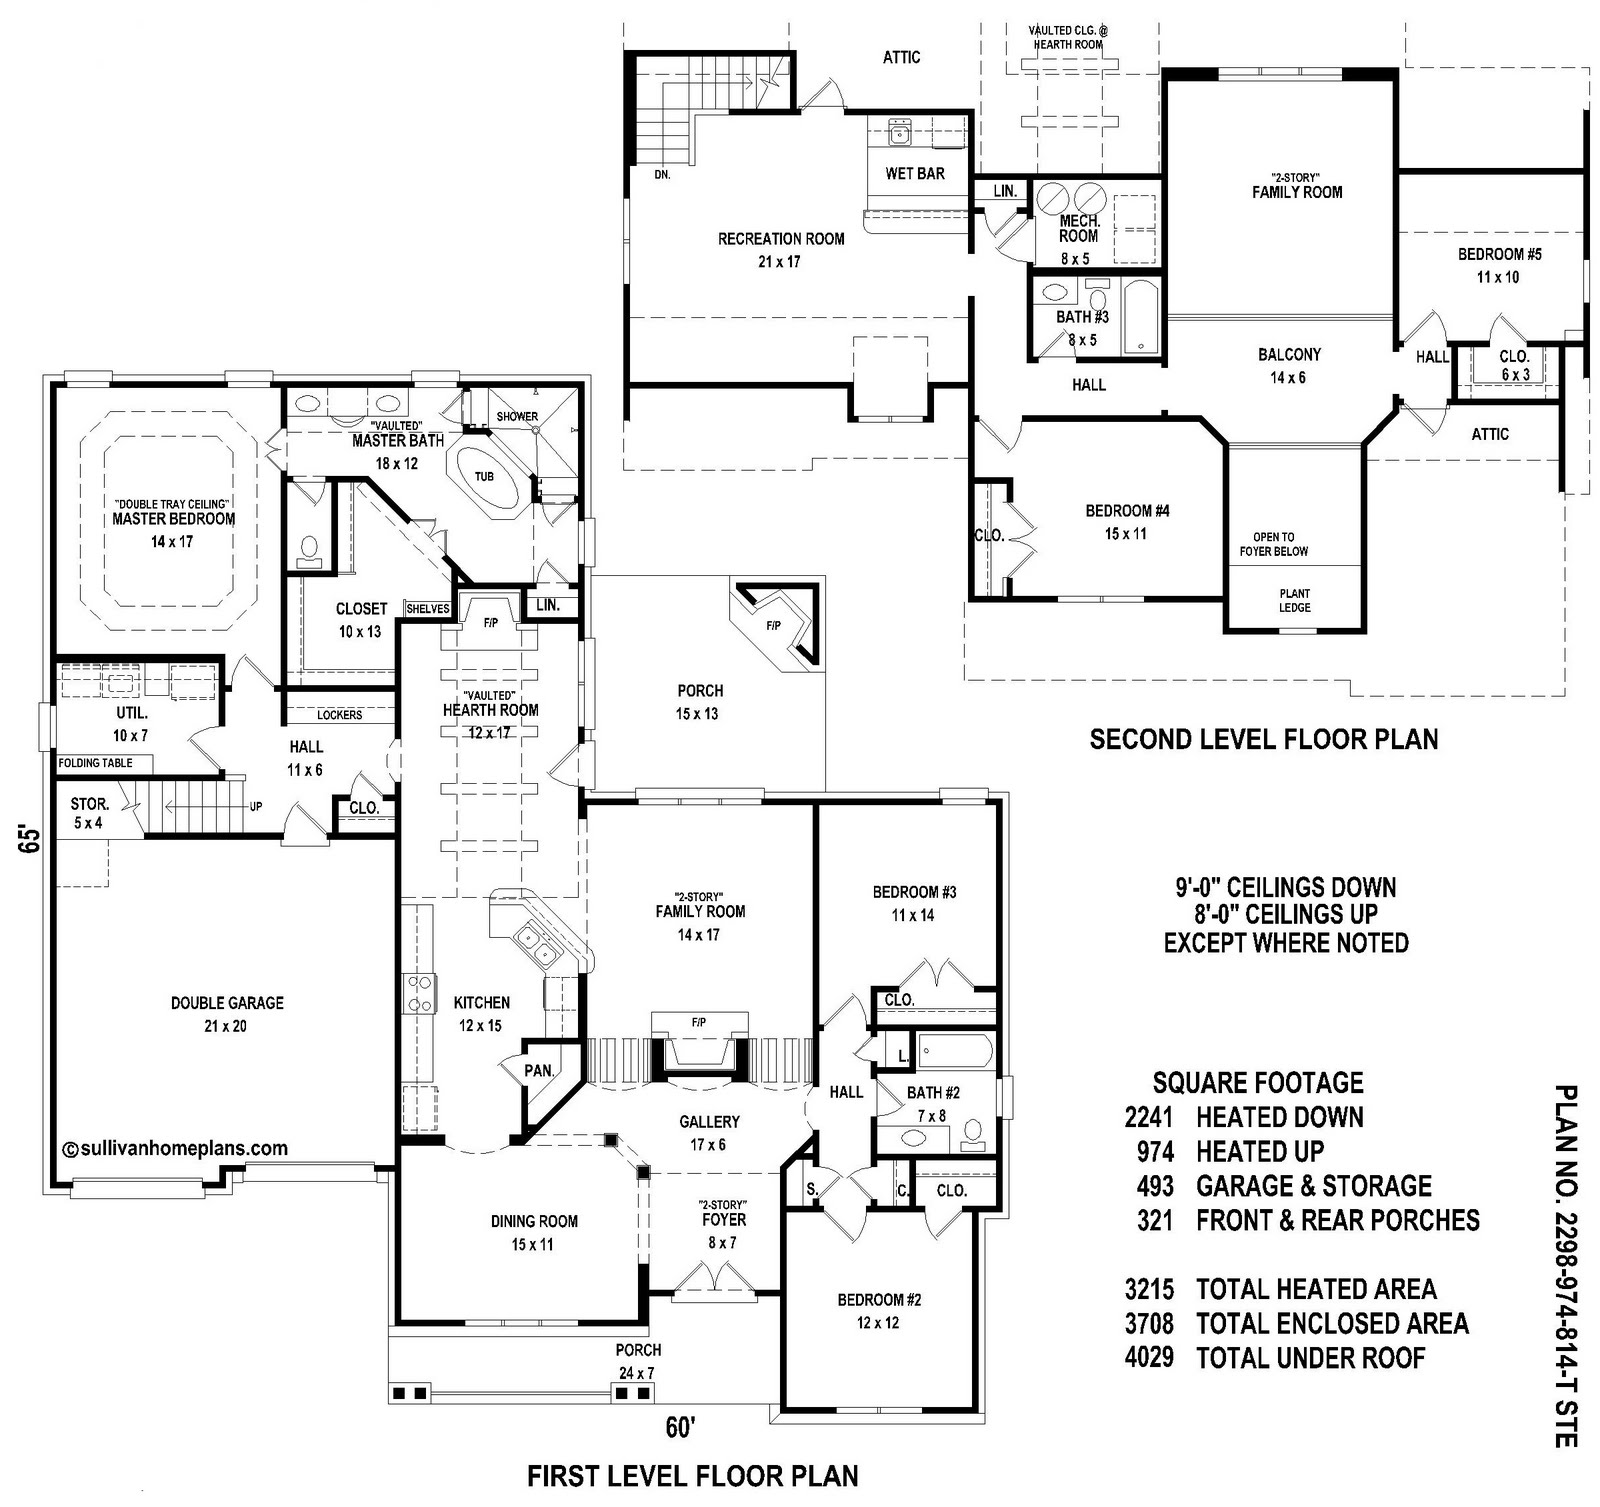 Sullivan home plans june 2010 for Five bedroom floor plans